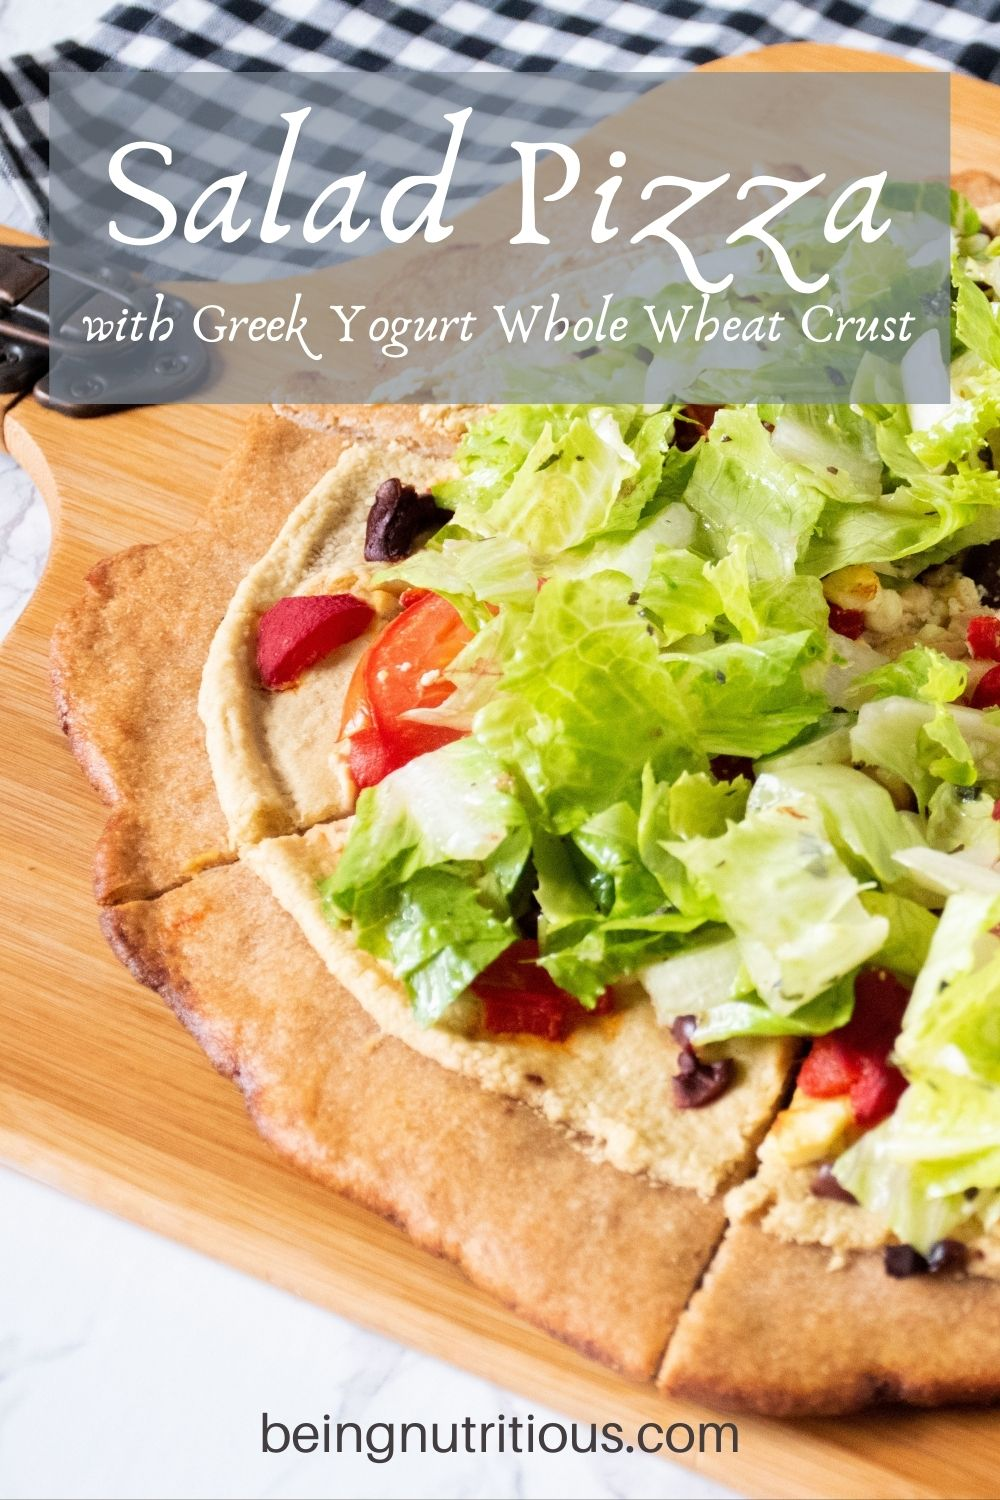 Pizza on a peel, with whole wheat crust, topped with salad. Text overlay: Salad Pizza with Greek Yogurt Whole Wheat Crust.